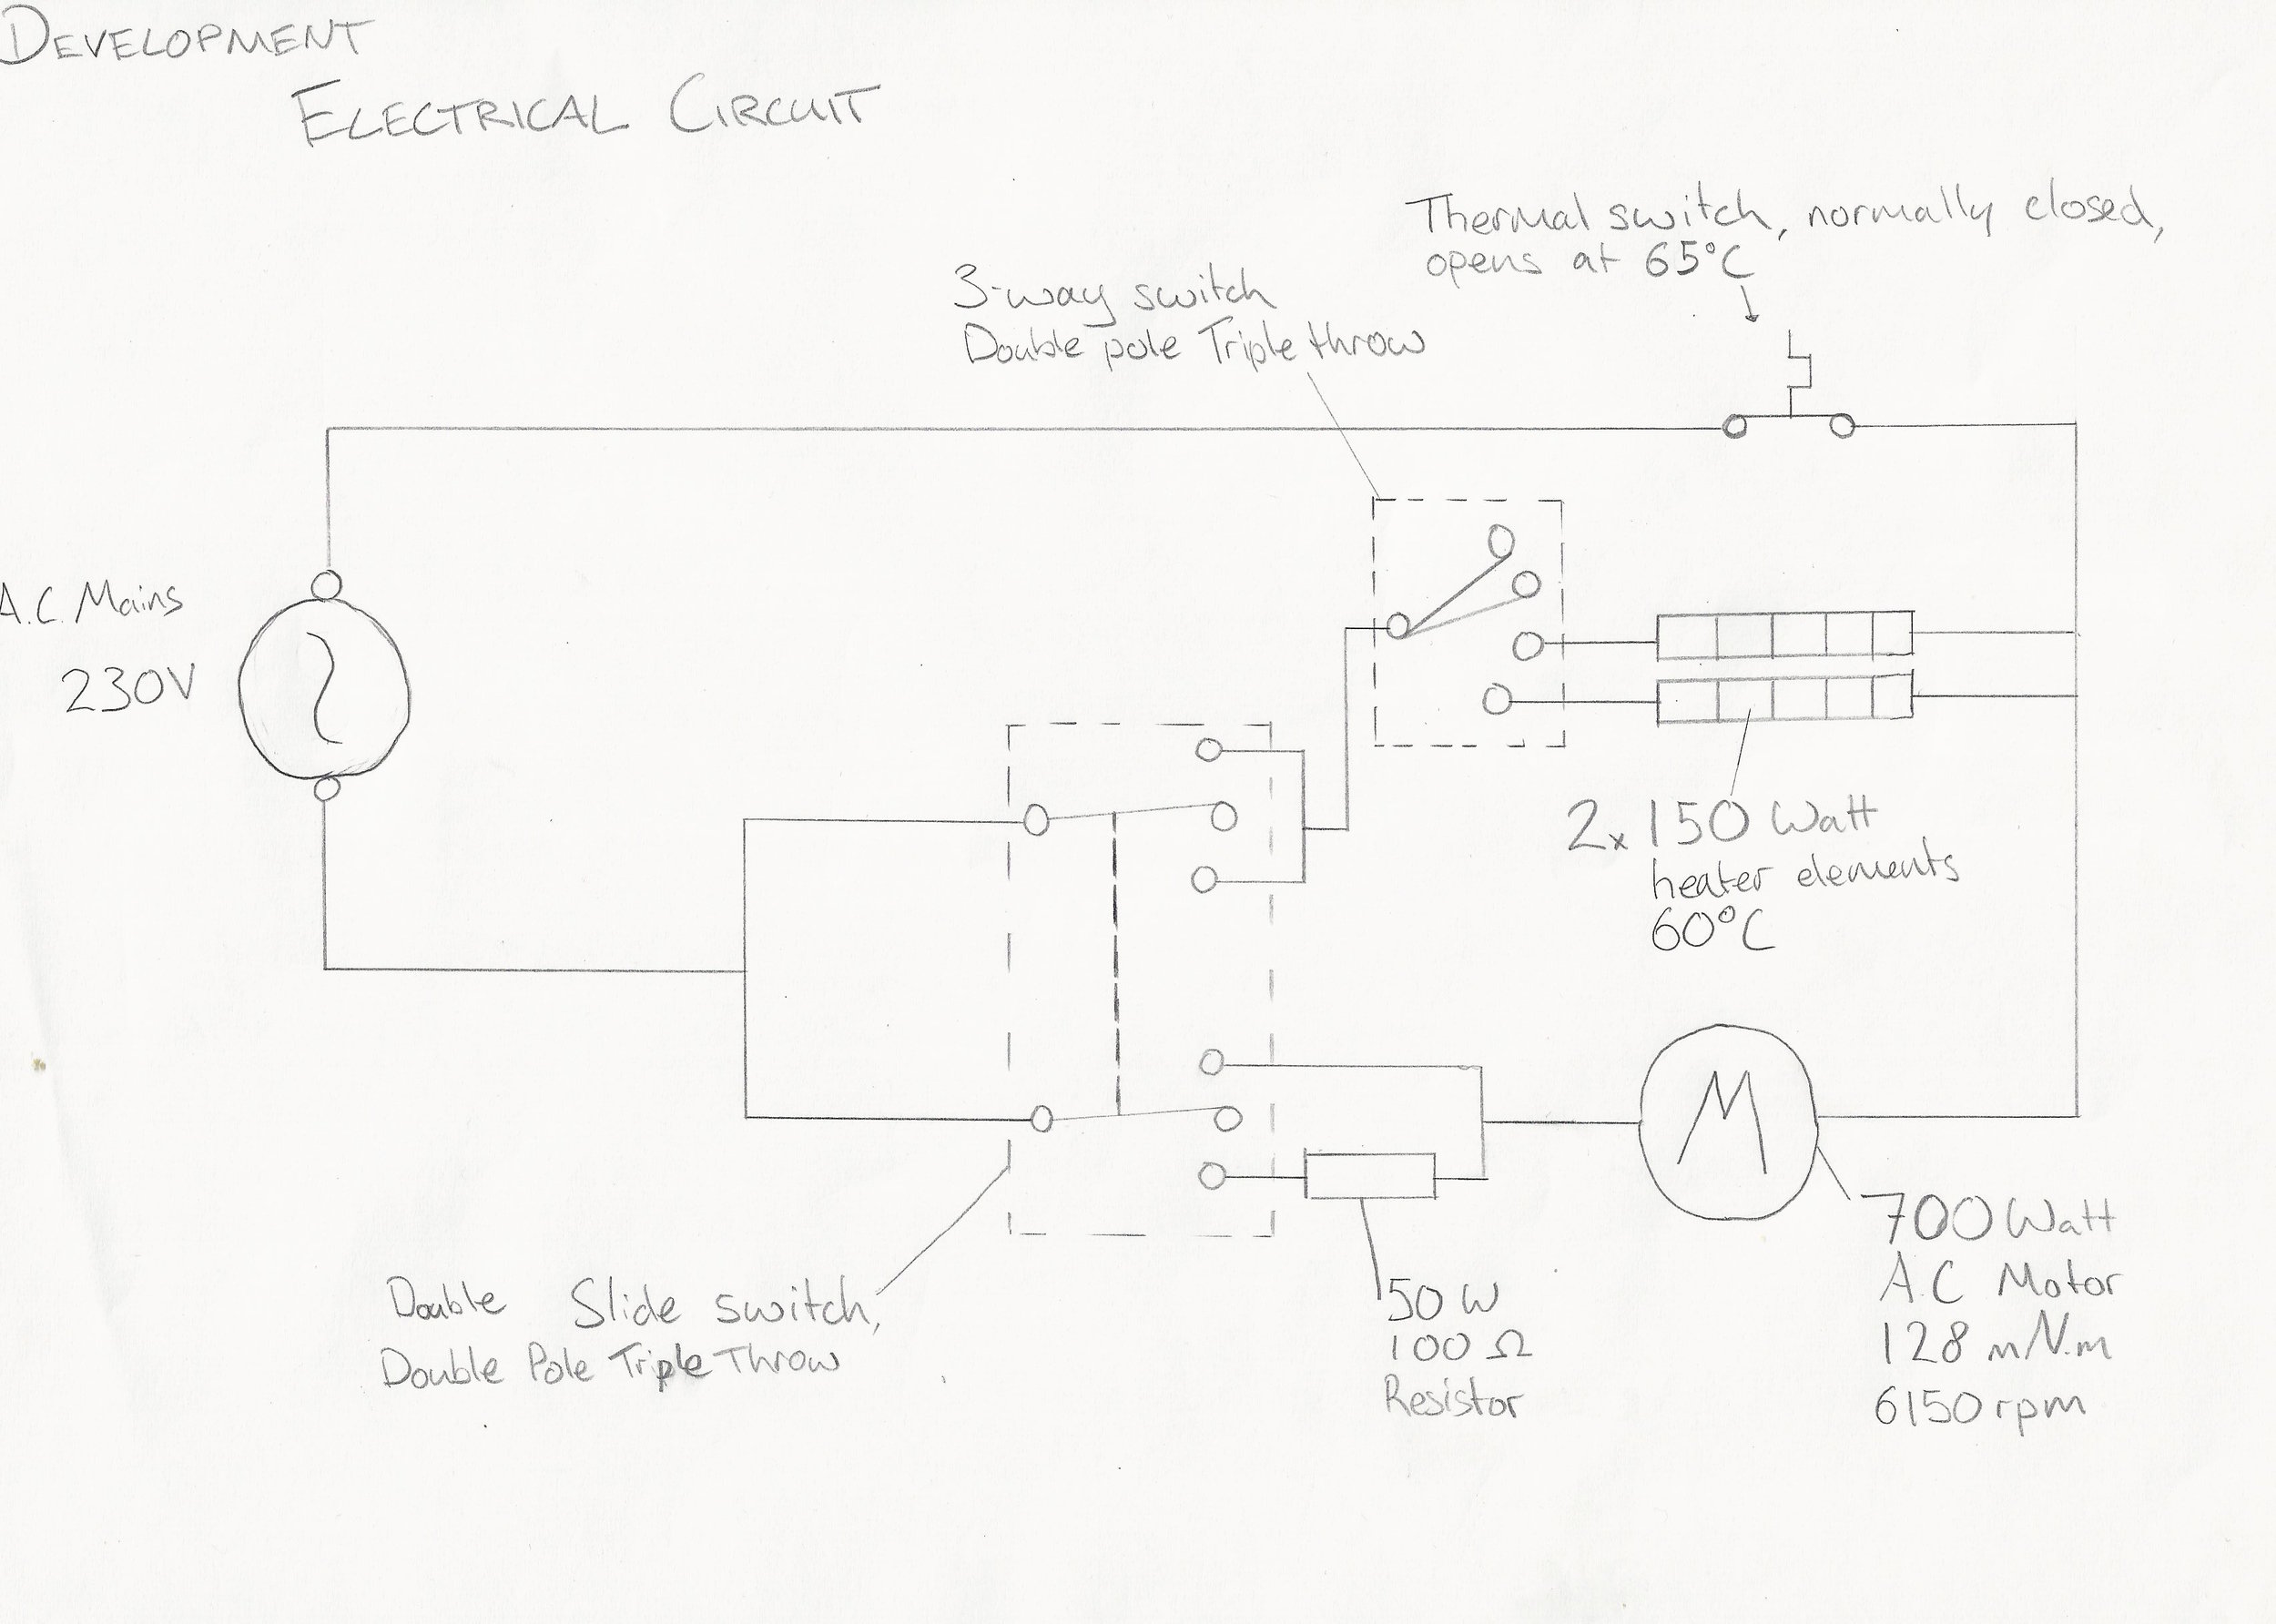 Hair Dryer Wiring Diagram from images.squarespace-cdn.com